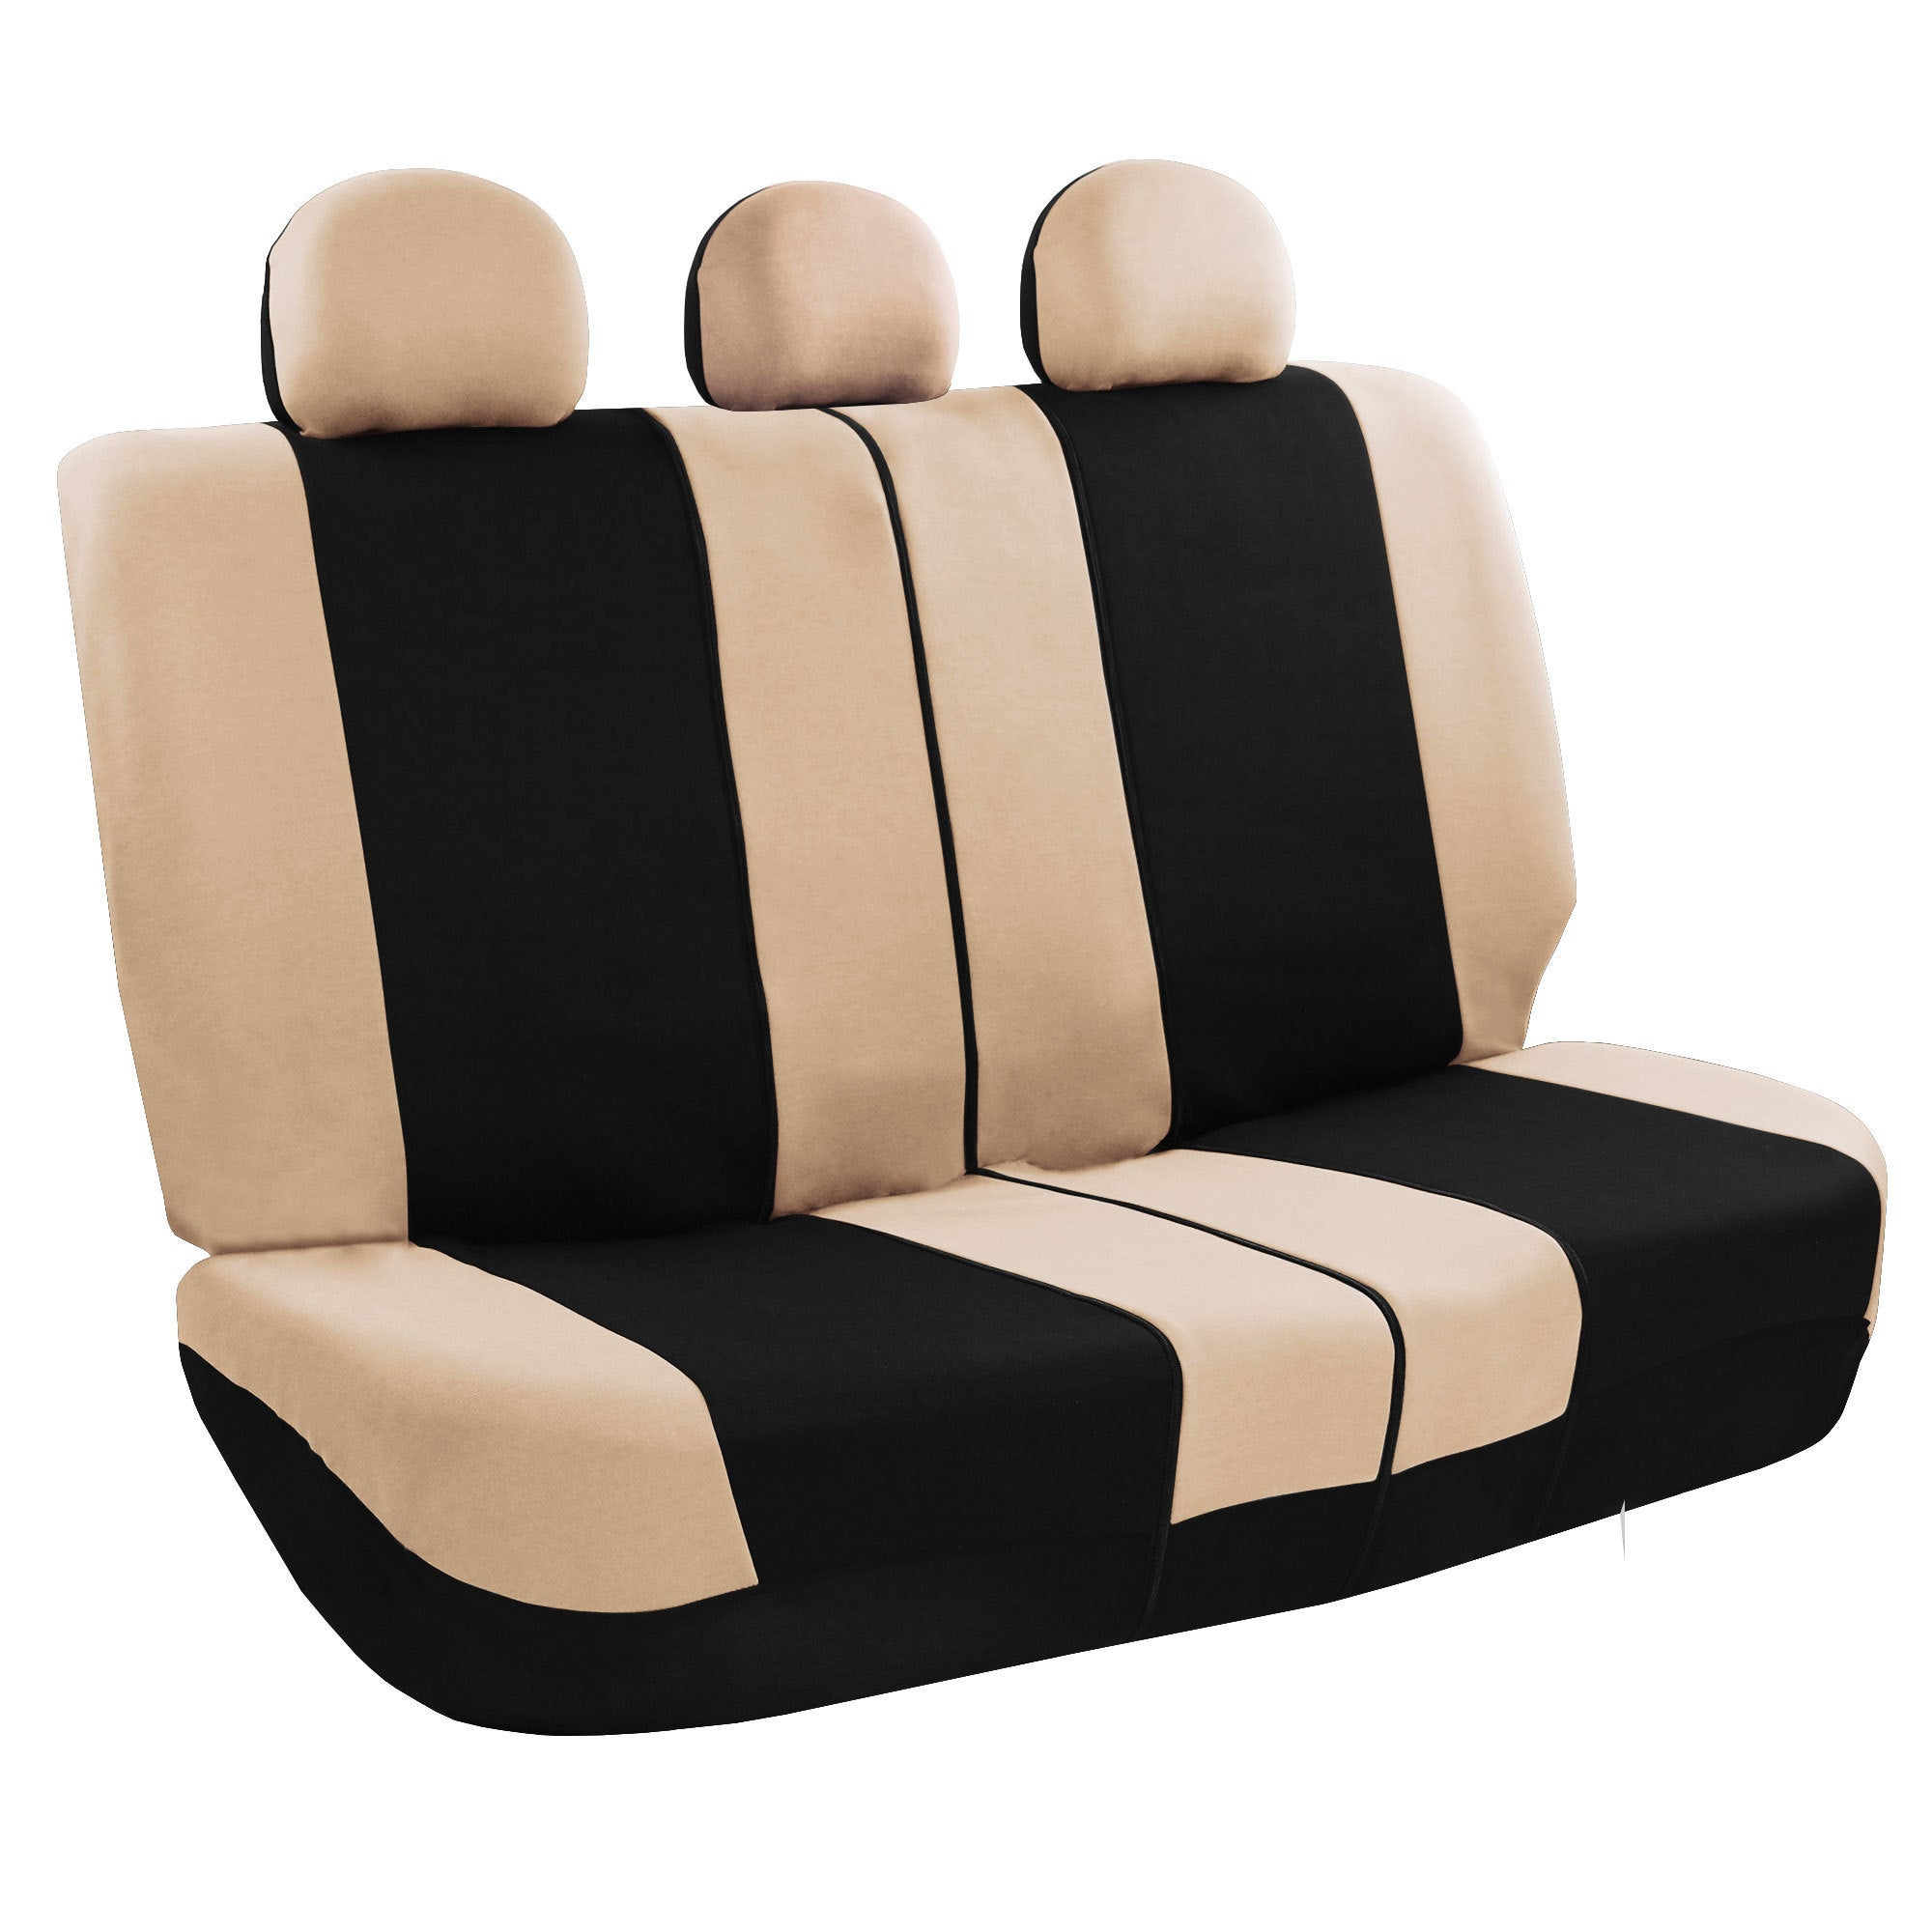 FH Group Beige And Black Combo Pack Fabric Auto Seat Covers Full Set